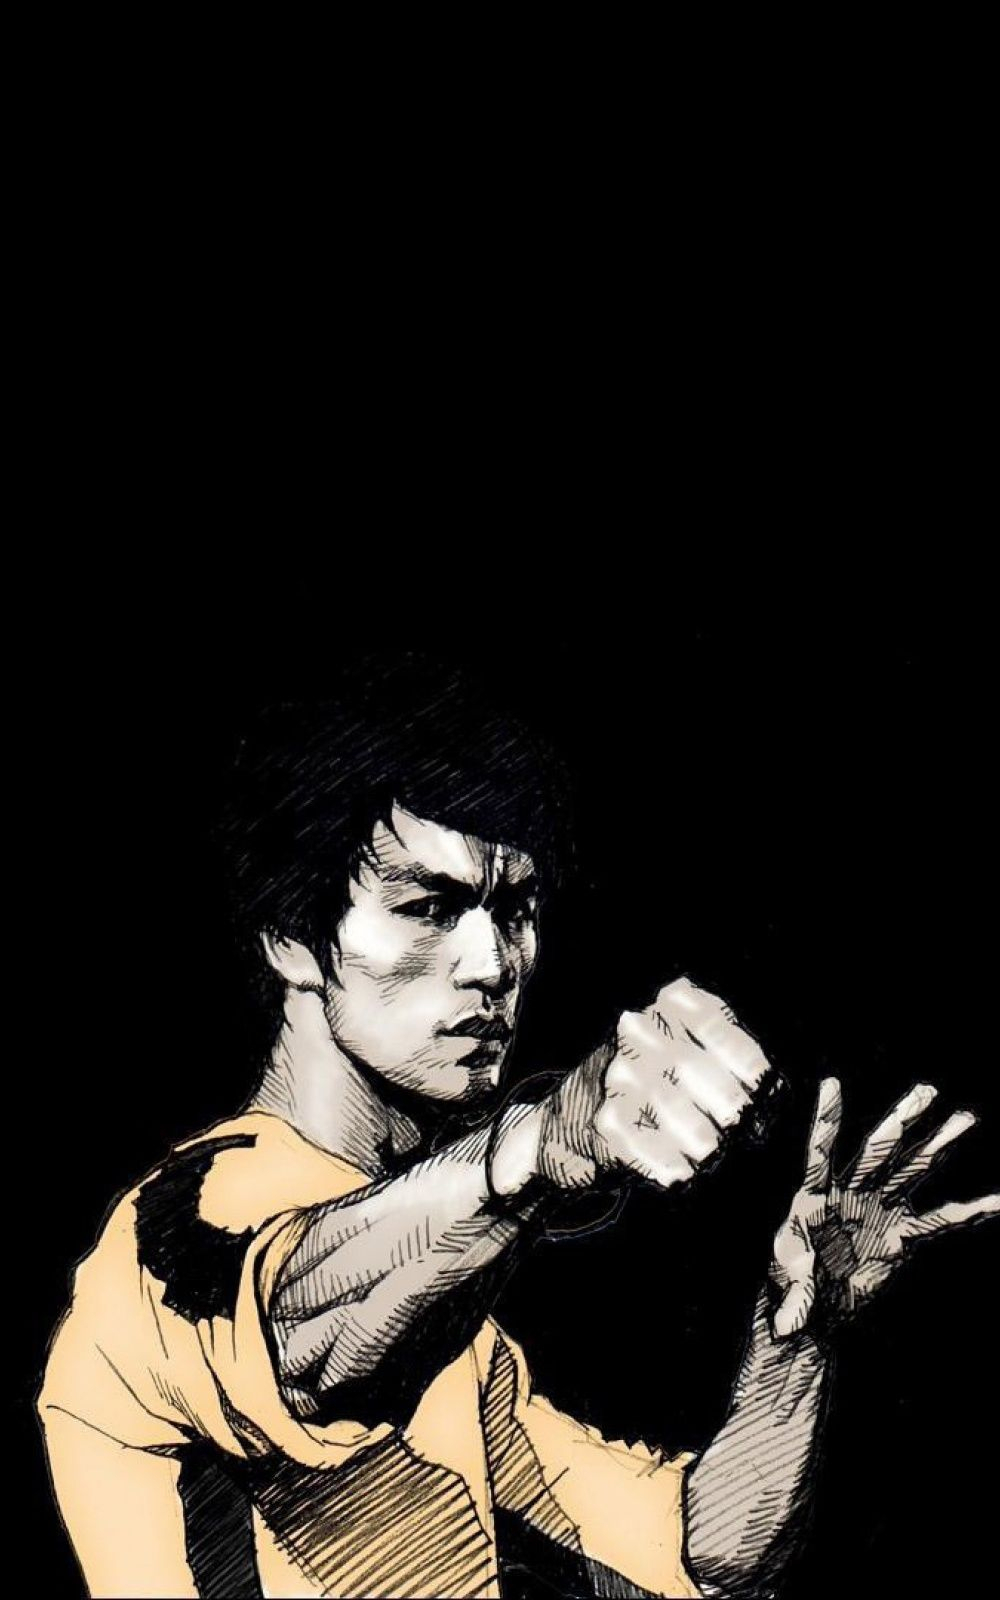 download bruce lee punch iphone 6 plus hd wallpaper | cartoon in